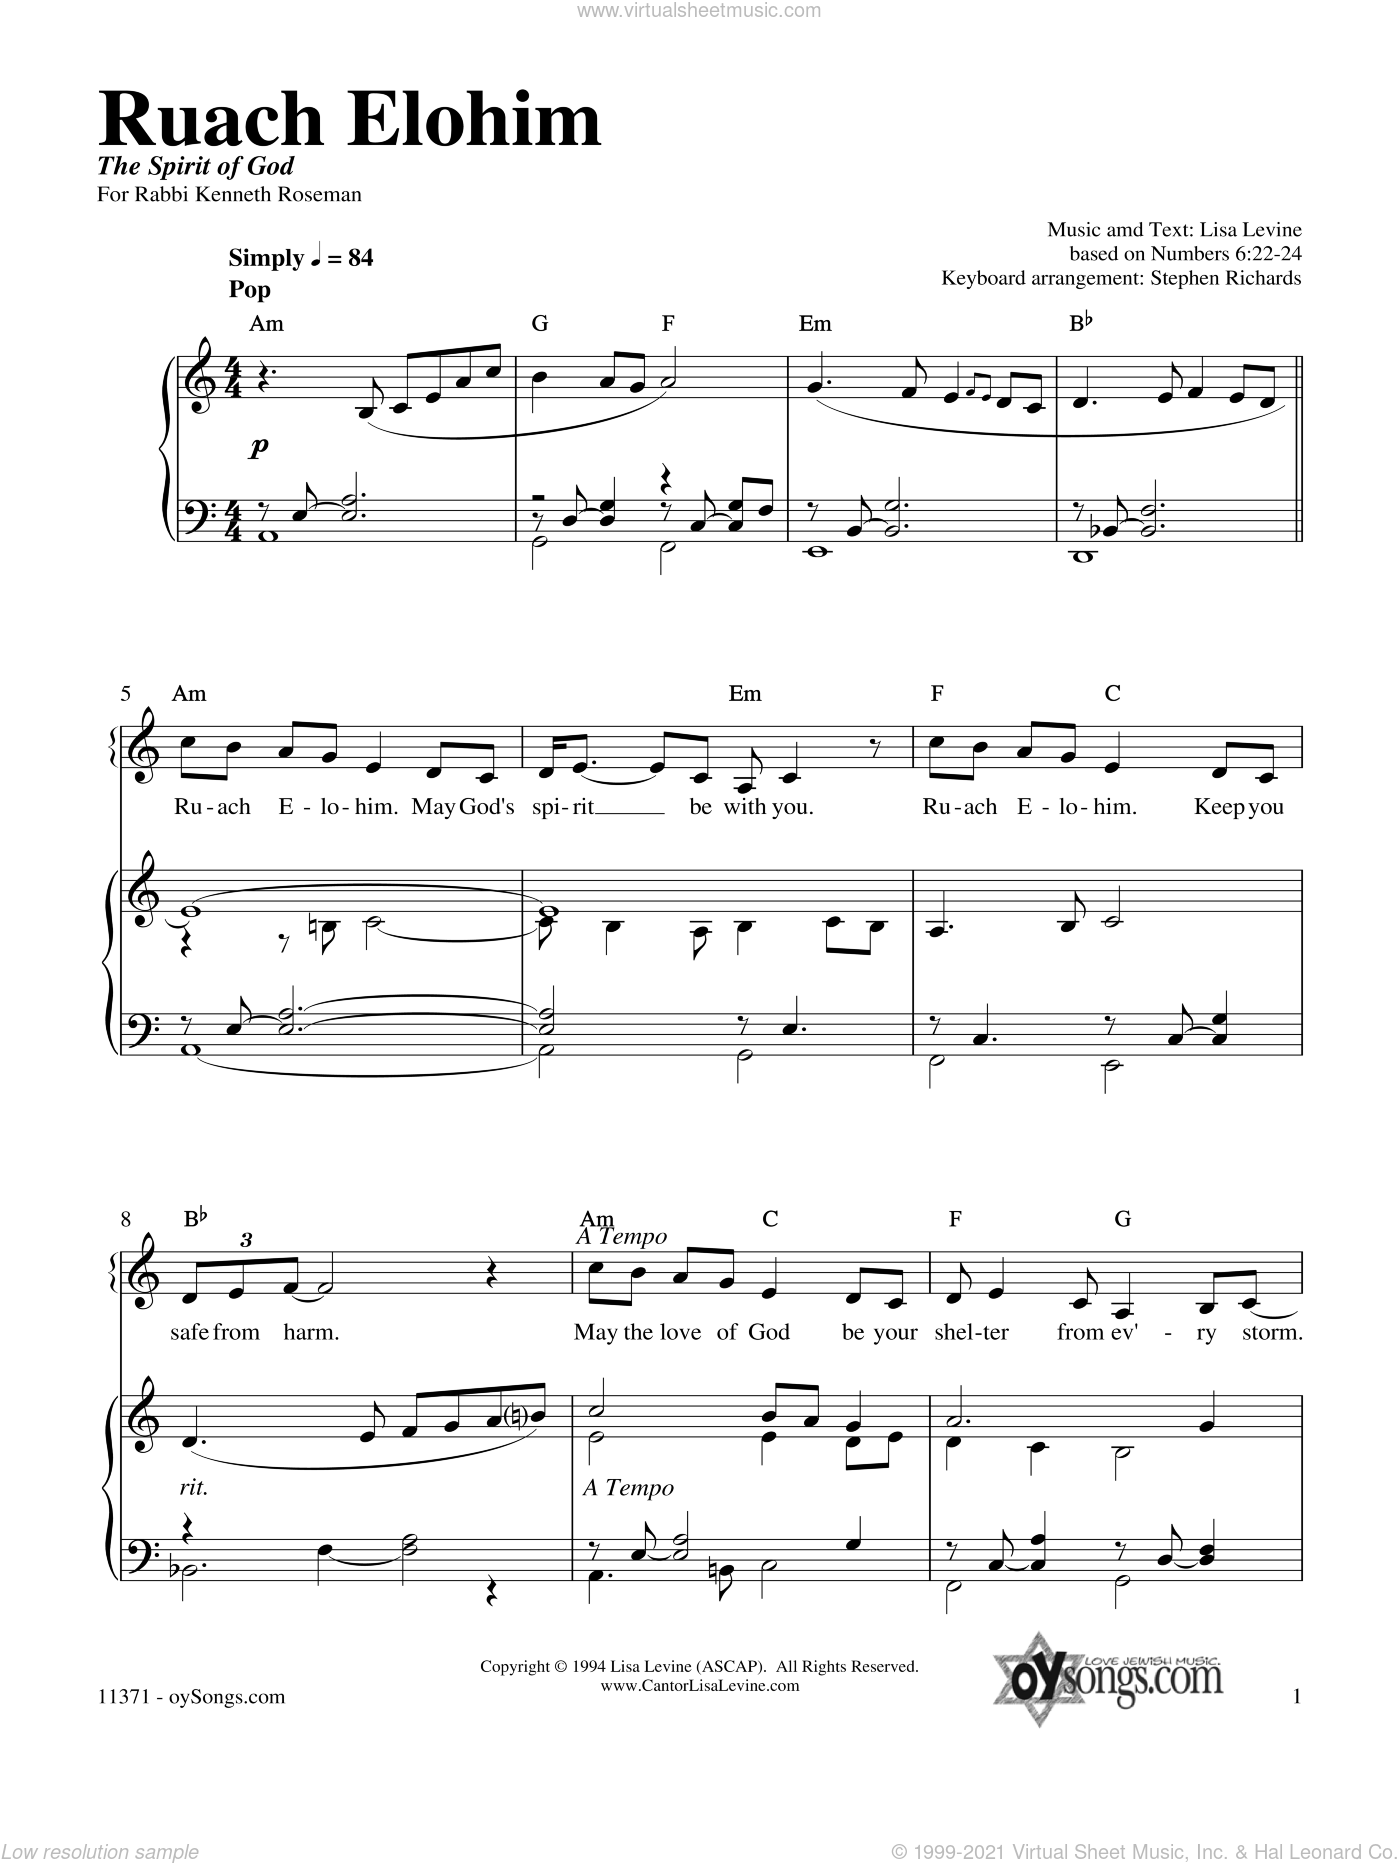 Ruach Elohim sheet music for voice, piano or guitar by Lisa Levine